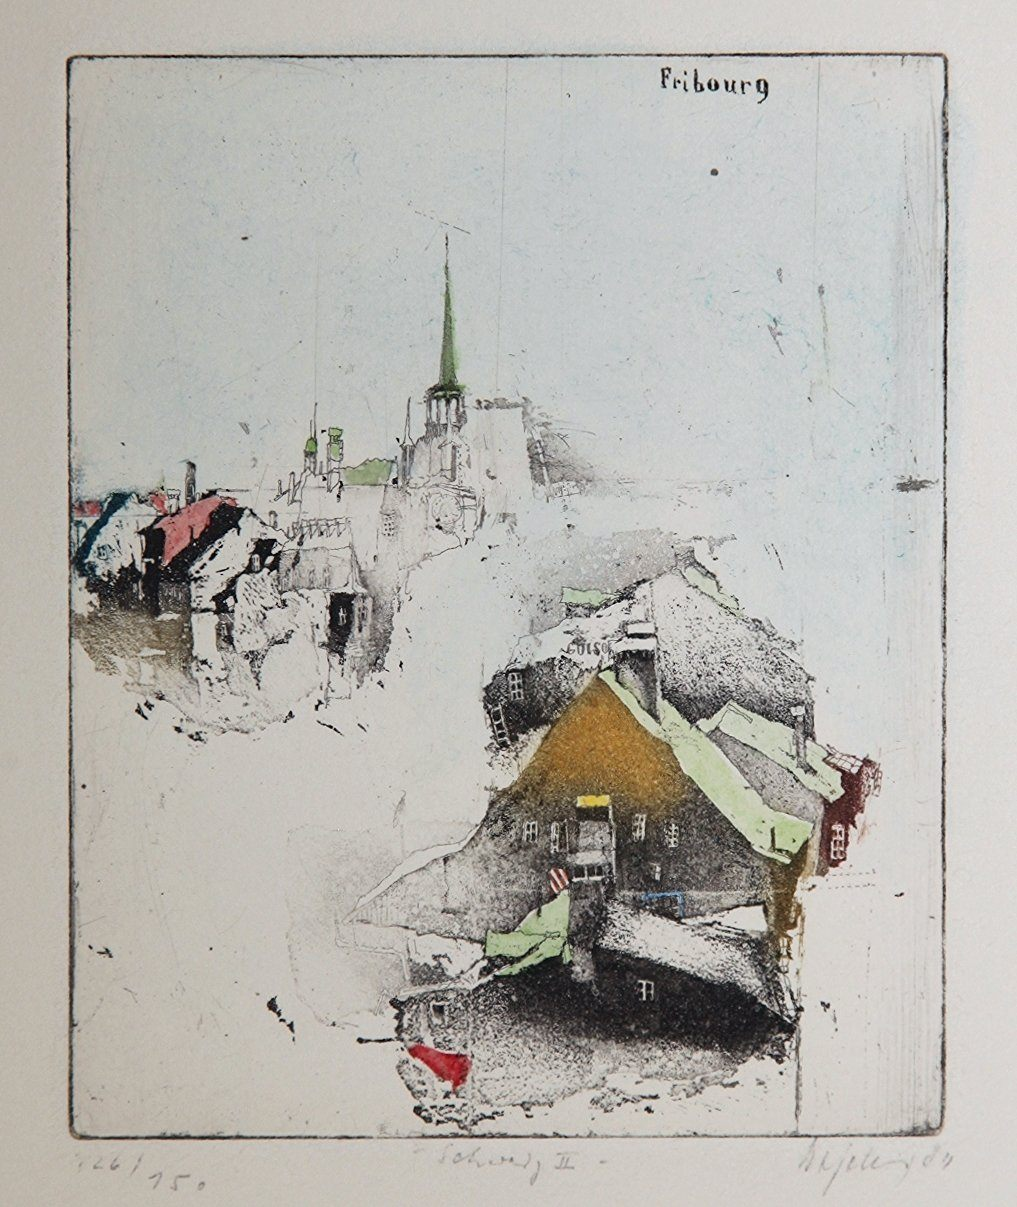 Fribourg, 1984 by Alexander Befelein, Etching at Art Acacia Gallery & Advisory